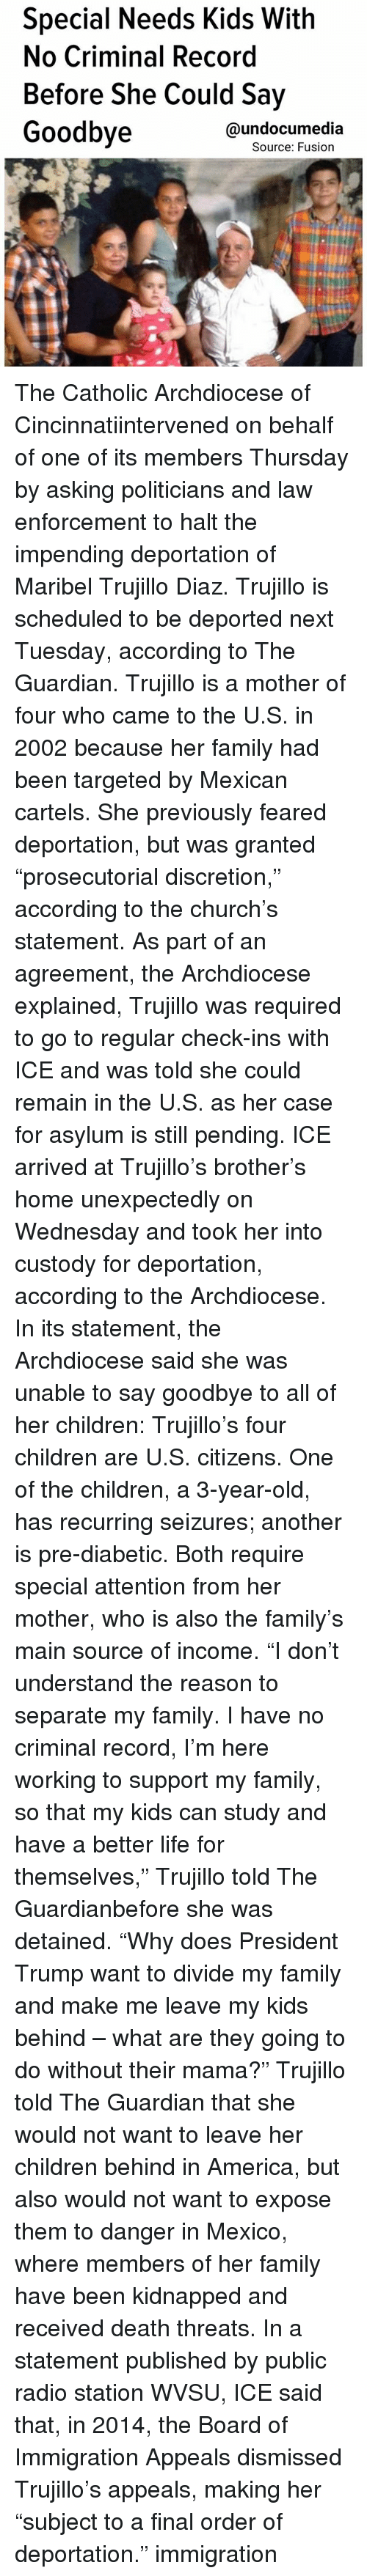 """America, Children, and Church: Special Needs Kids With  No Criminal Record  Before She Could Say  Goodbye  @undocumedia  Source: Fusion The Catholic Archdiocese of Cincinnatiintervened on behalf of one of its members Thursday by asking politicians and law enforcement to halt the impending deportation of Maribel Trujillo Diaz. Trujillo is scheduled to be deported next Tuesday, according to The Guardian. Trujillo is a mother of four who came to the U.S. in 2002 because her family had been targeted by Mexican cartels. She previously feared deportation, but was granted """"prosecutorial discretion,"""" according to the church's statement. As part of an agreement, the Archdiocese explained, Trujillo was required to go to regular check-ins with ICE and was told she could remain in the U.S. as her case for asylum is still pending. ICE arrived at Trujillo's brother's home unexpectedly on Wednesday and took her into custody for deportation, according to the Archdiocese. In its statement, the Archdiocese said she was unable to say goodbye to all of her children: Trujillo's four children are U.S. citizens. One of the children, a 3-year-old, has recurring seizures; another is pre-diabetic. Both require special attention from her mother, who is also the family's main source of income. """"I don't understand the reason to separate my family. I have no criminal record, I'm here working to support my family, so that my kids can study and have a better life for themselves,"""" Trujillo told The Guardianbefore she was detained. """"Why does President Trump want to divide my family and make me leave my kids behind – what are they going to do without their mama?"""" Trujillo told The Guardian that she would not want to leave her children behind in America, but also would not want to expose them to danger in Mexico, where members of her family have been kidnapped and received death threats. In a statement published by public radio station WVSU, ICE said that, in 2014, the Board of Immigration Appeals dis"""